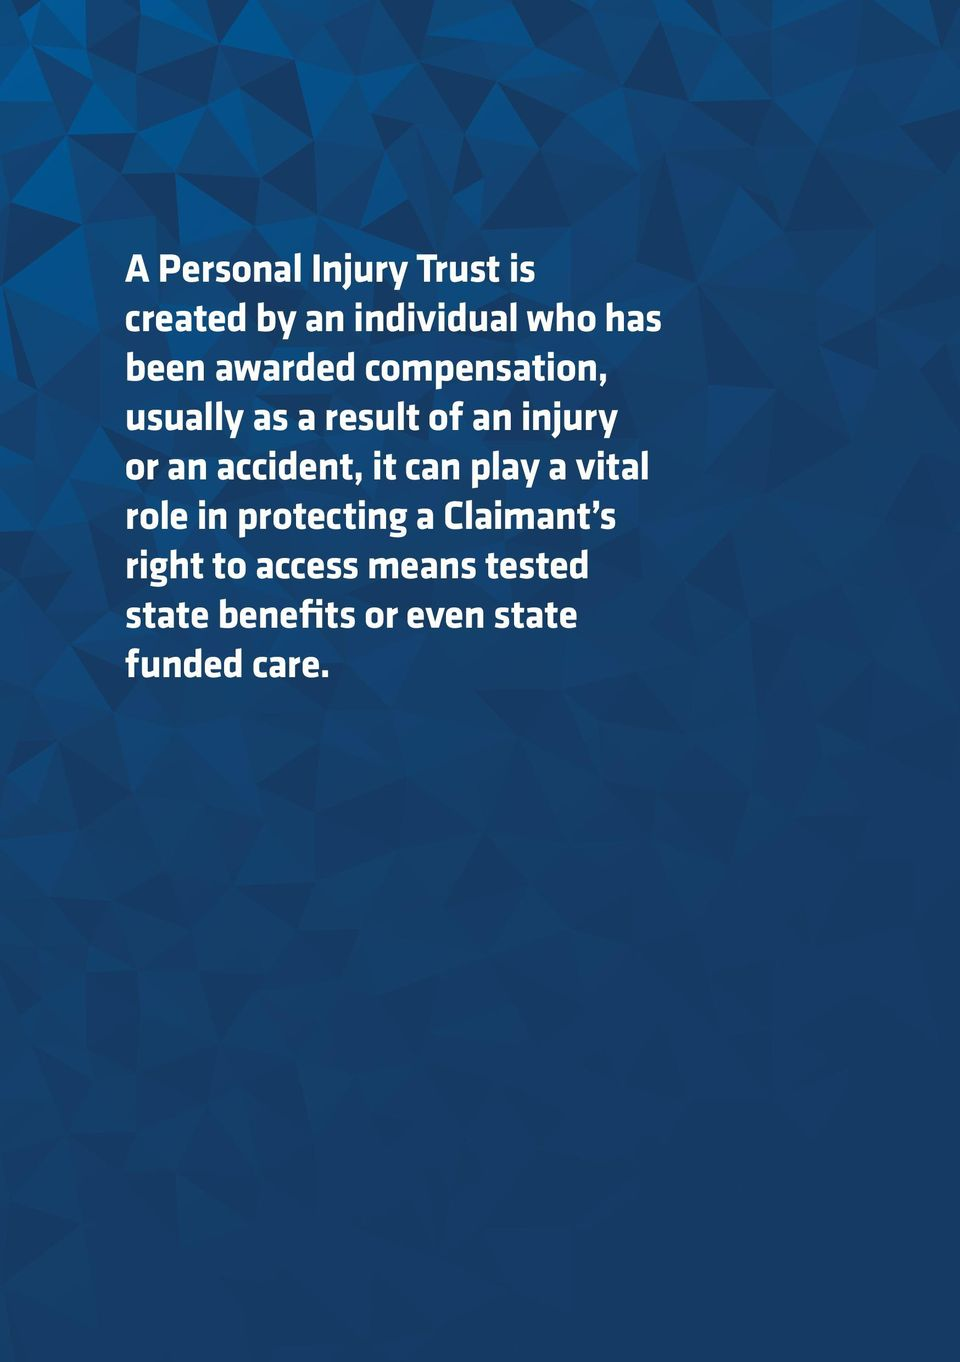 accident, it can play a vital role in protecting a Claimant s